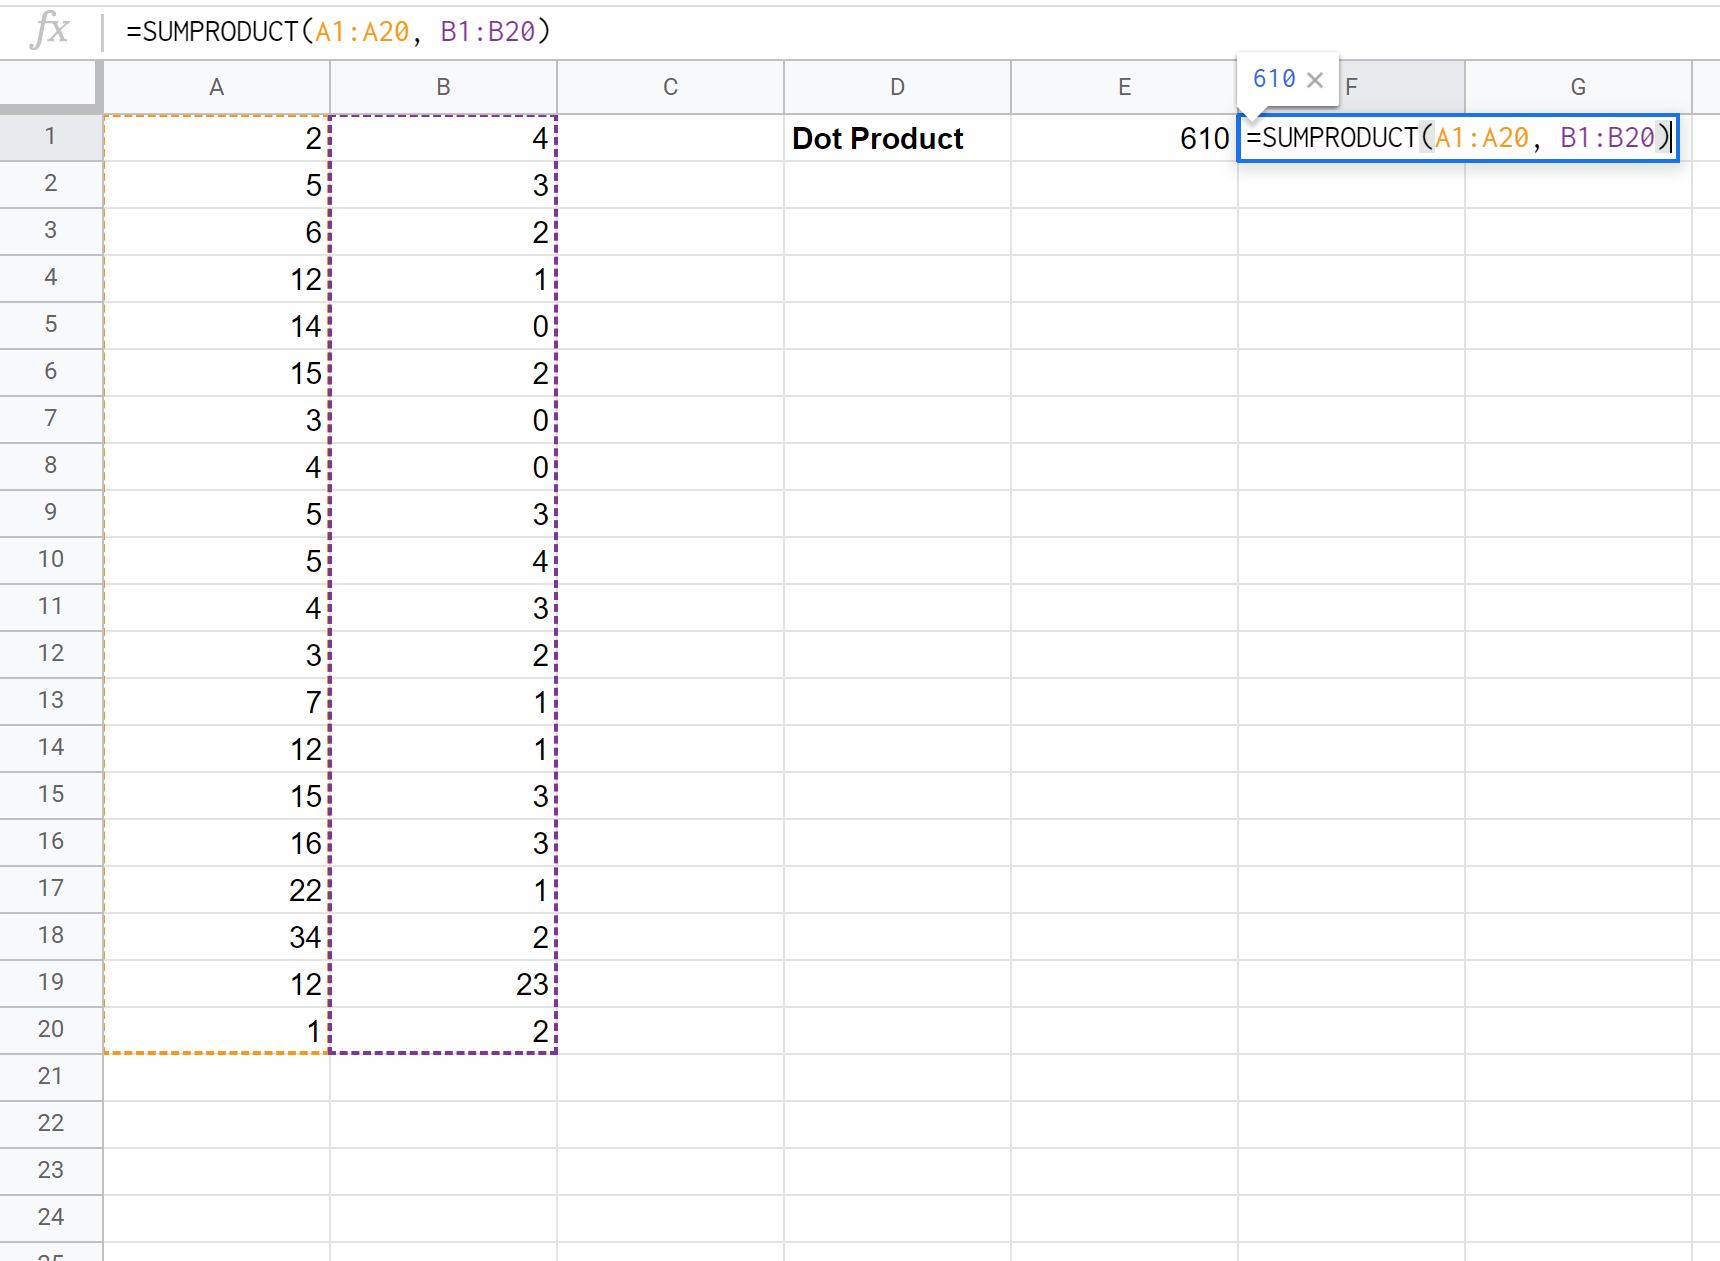 Dot product formula in Google Sheets